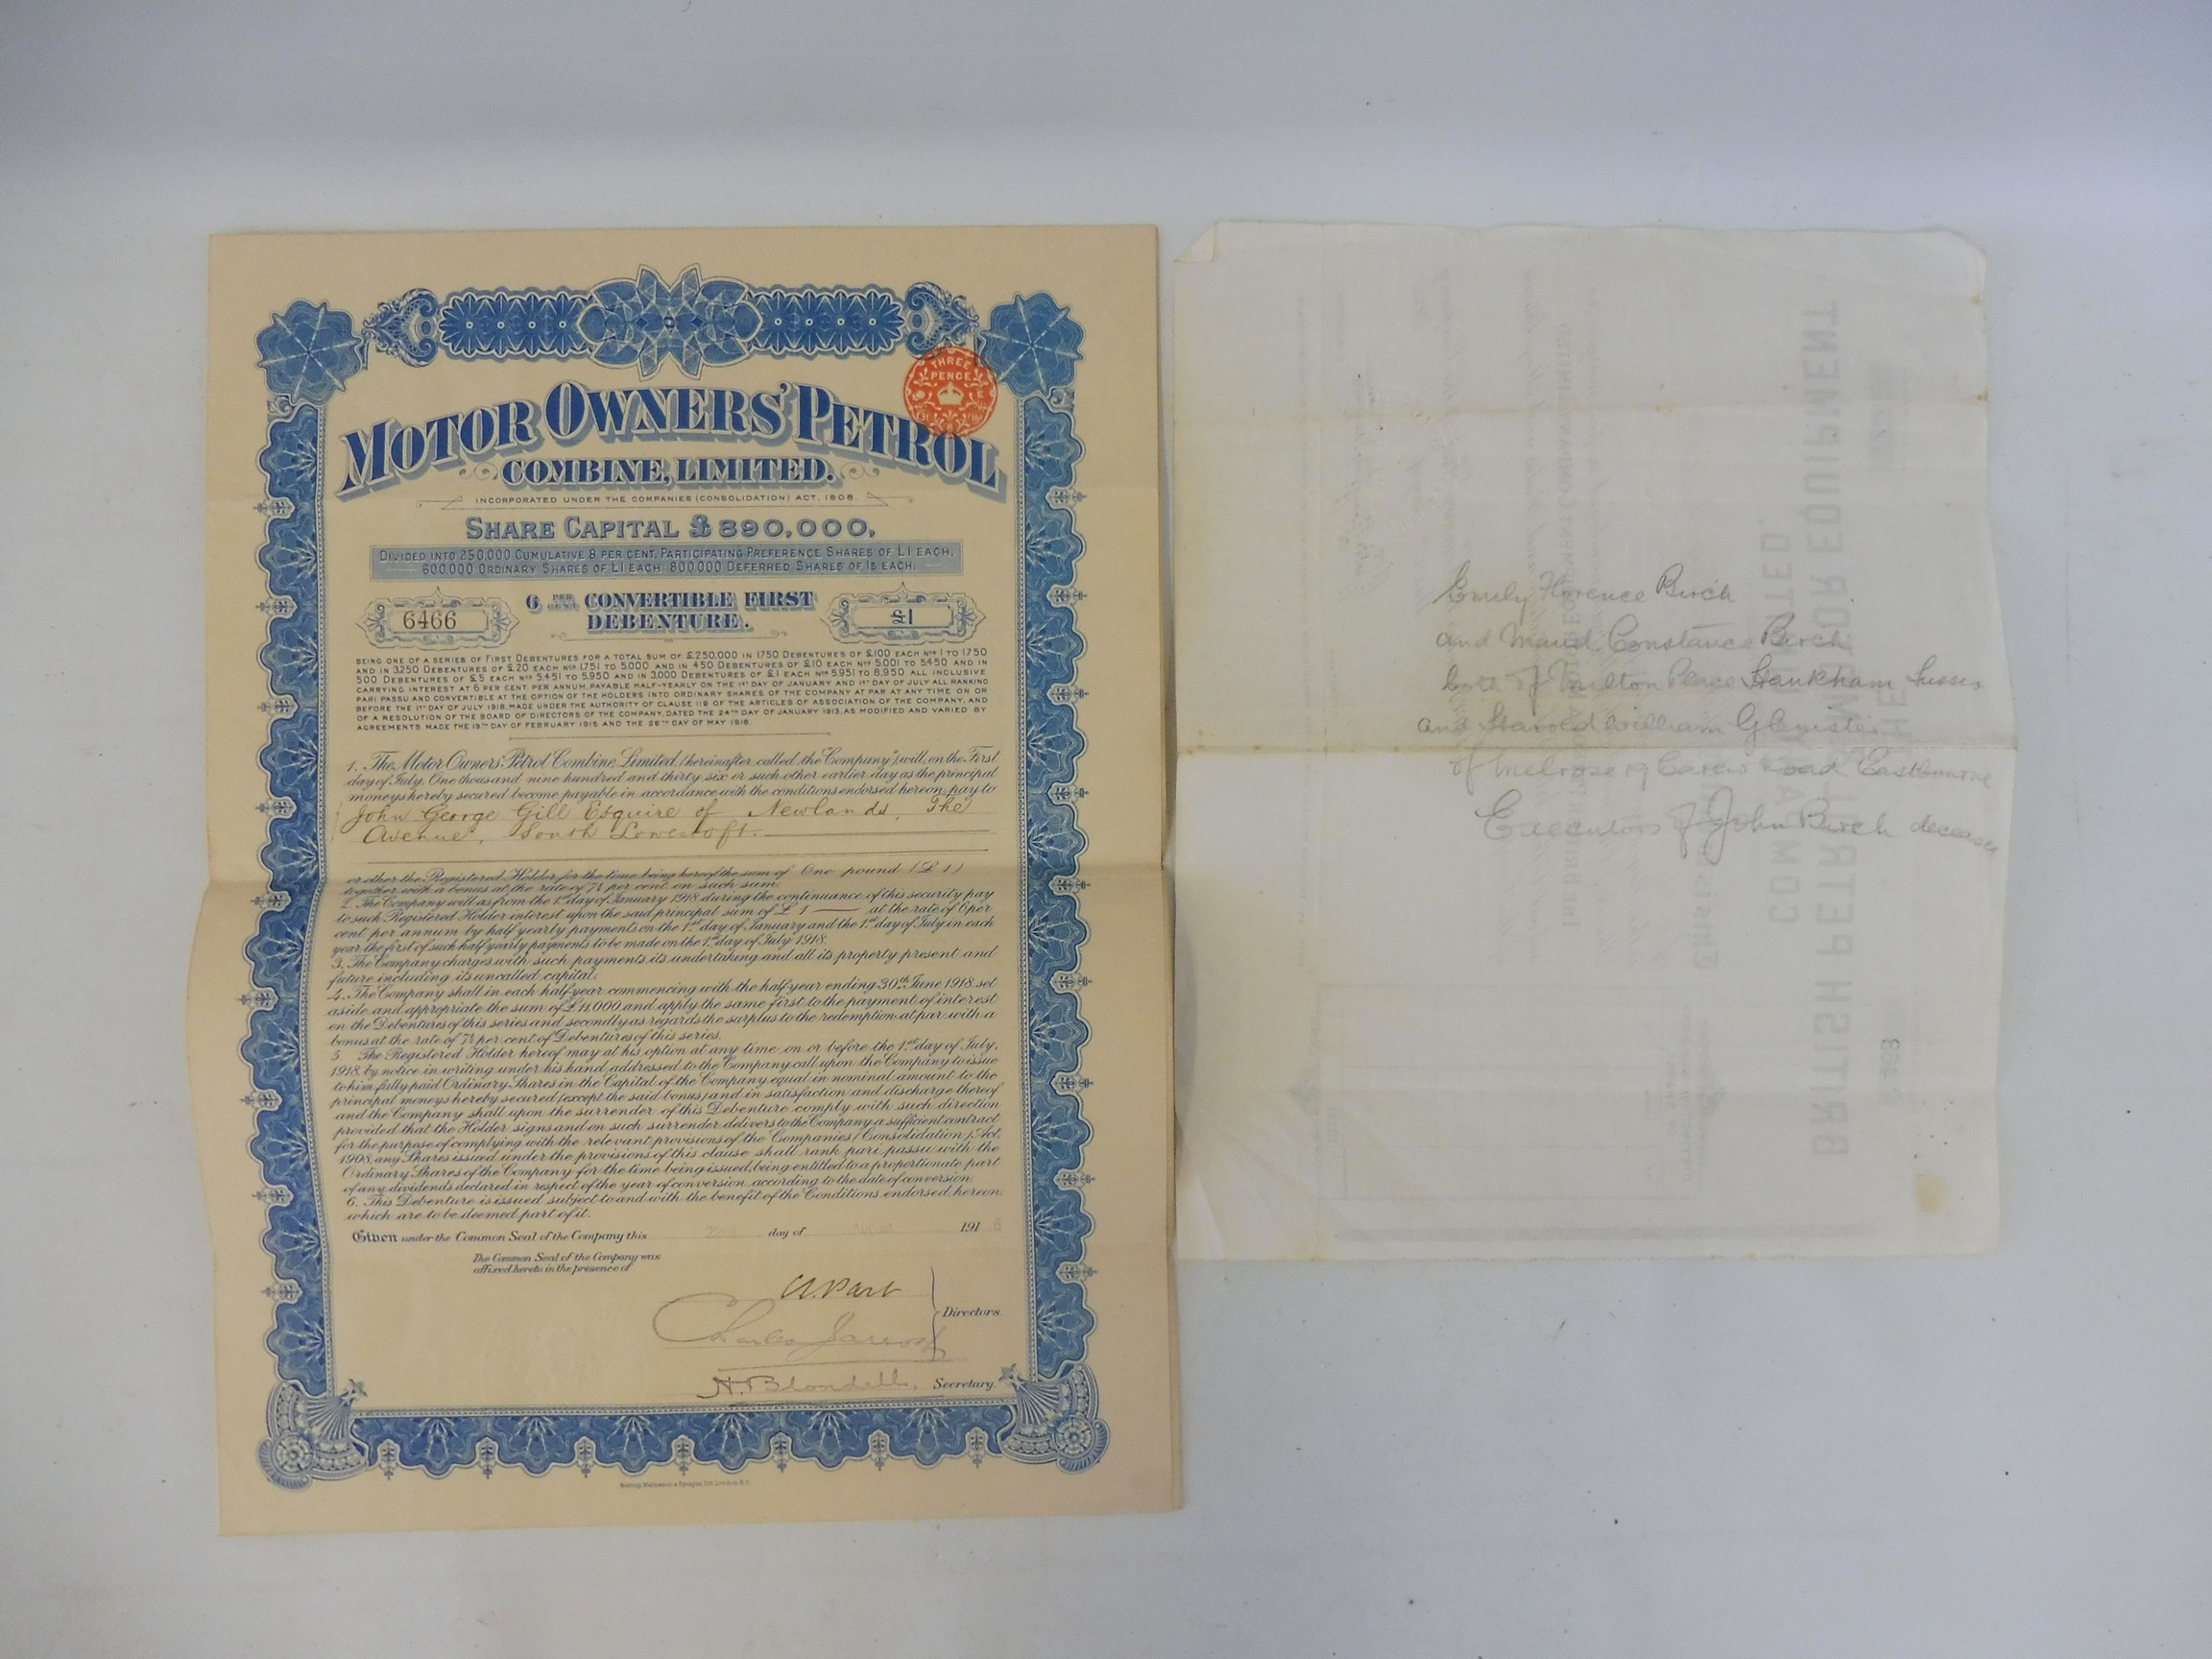 A share certificate for The British Petrol and Motor Equipment Company Limited dated March 1922 - Image 2 of 2